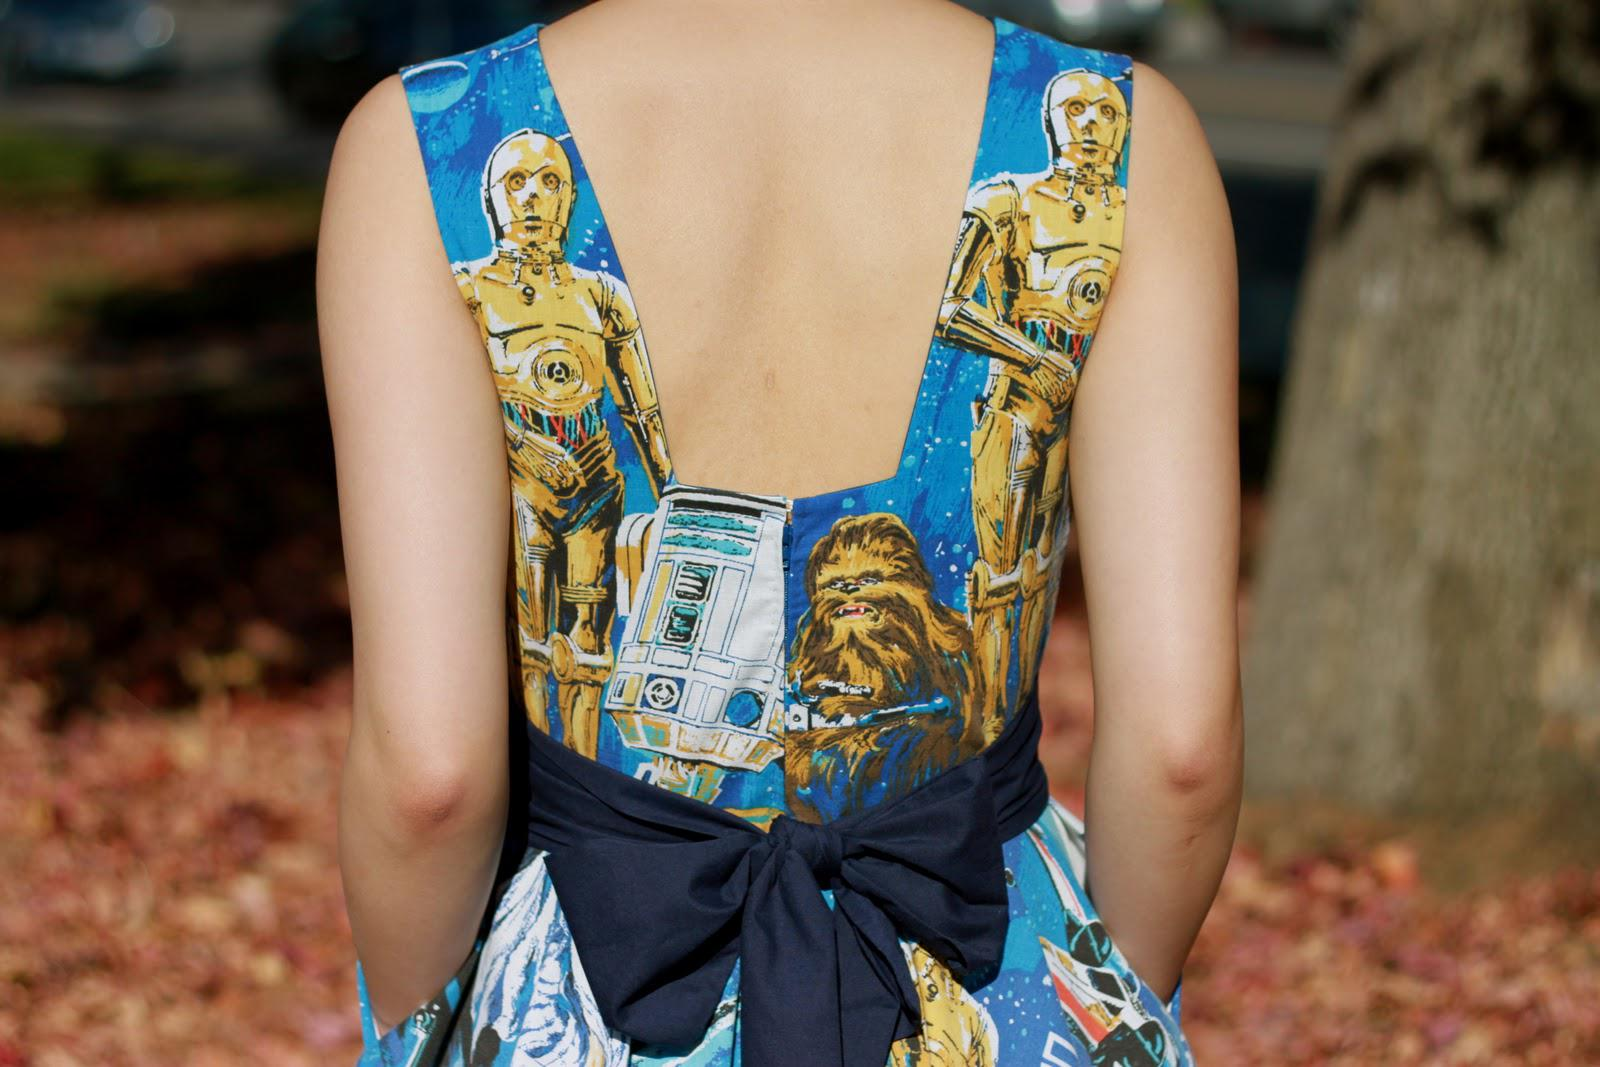 C3PO Dress for Your Geeky Girlfriend от Marinara за 24 feb 2013